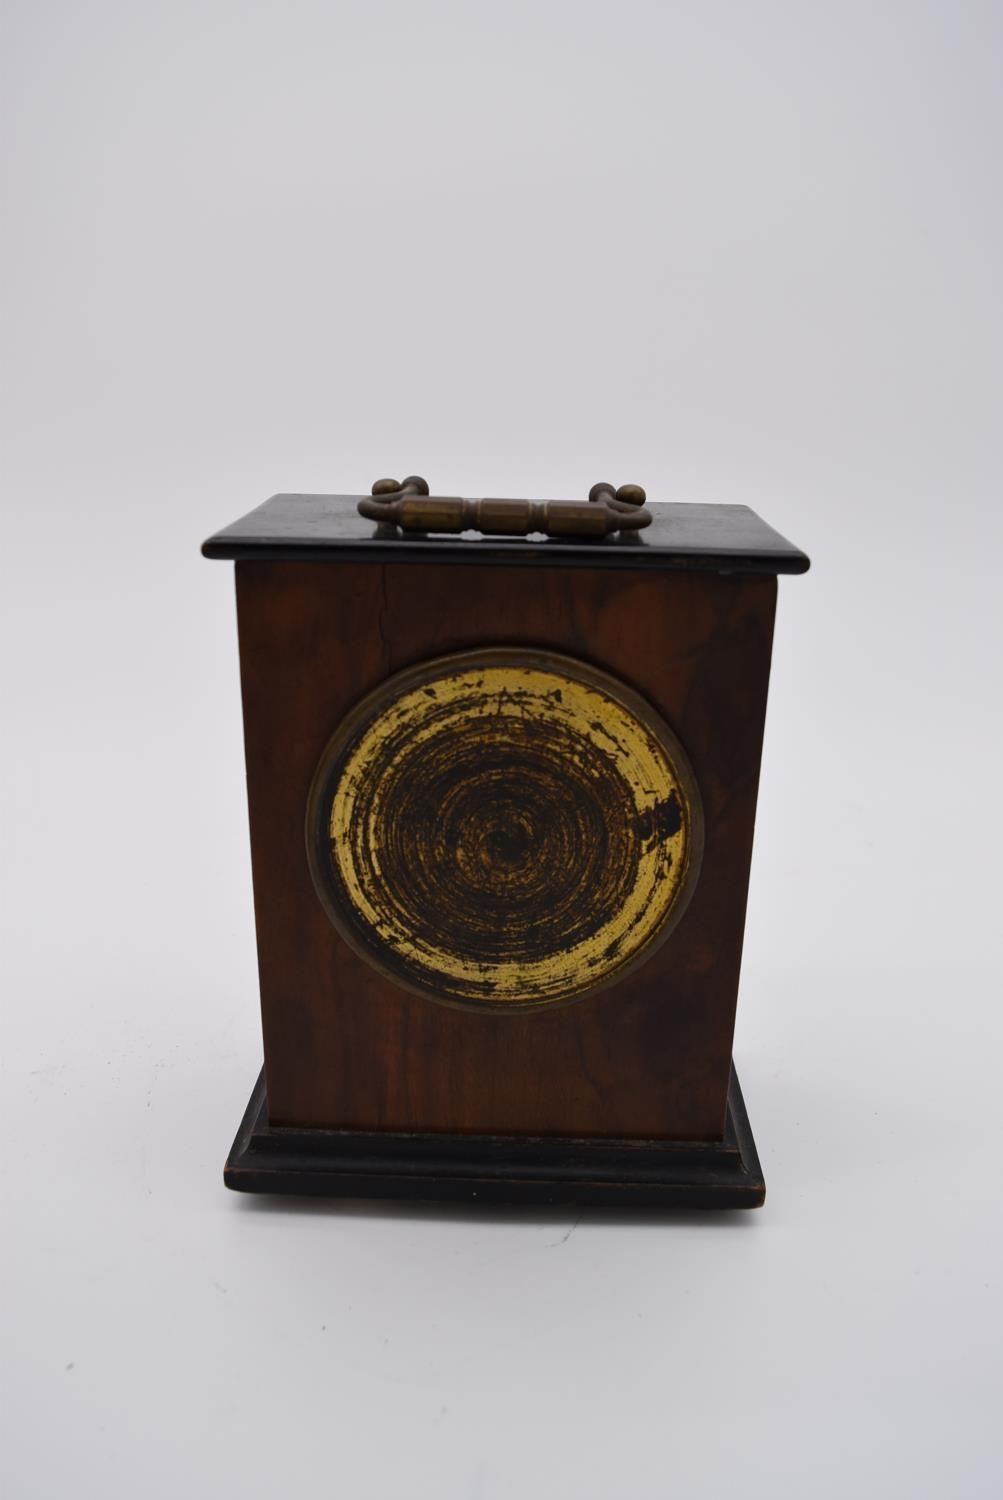 A brass cased carriage clock with engraved brass front with scrolling design and white enamel dial - Image 8 of 8